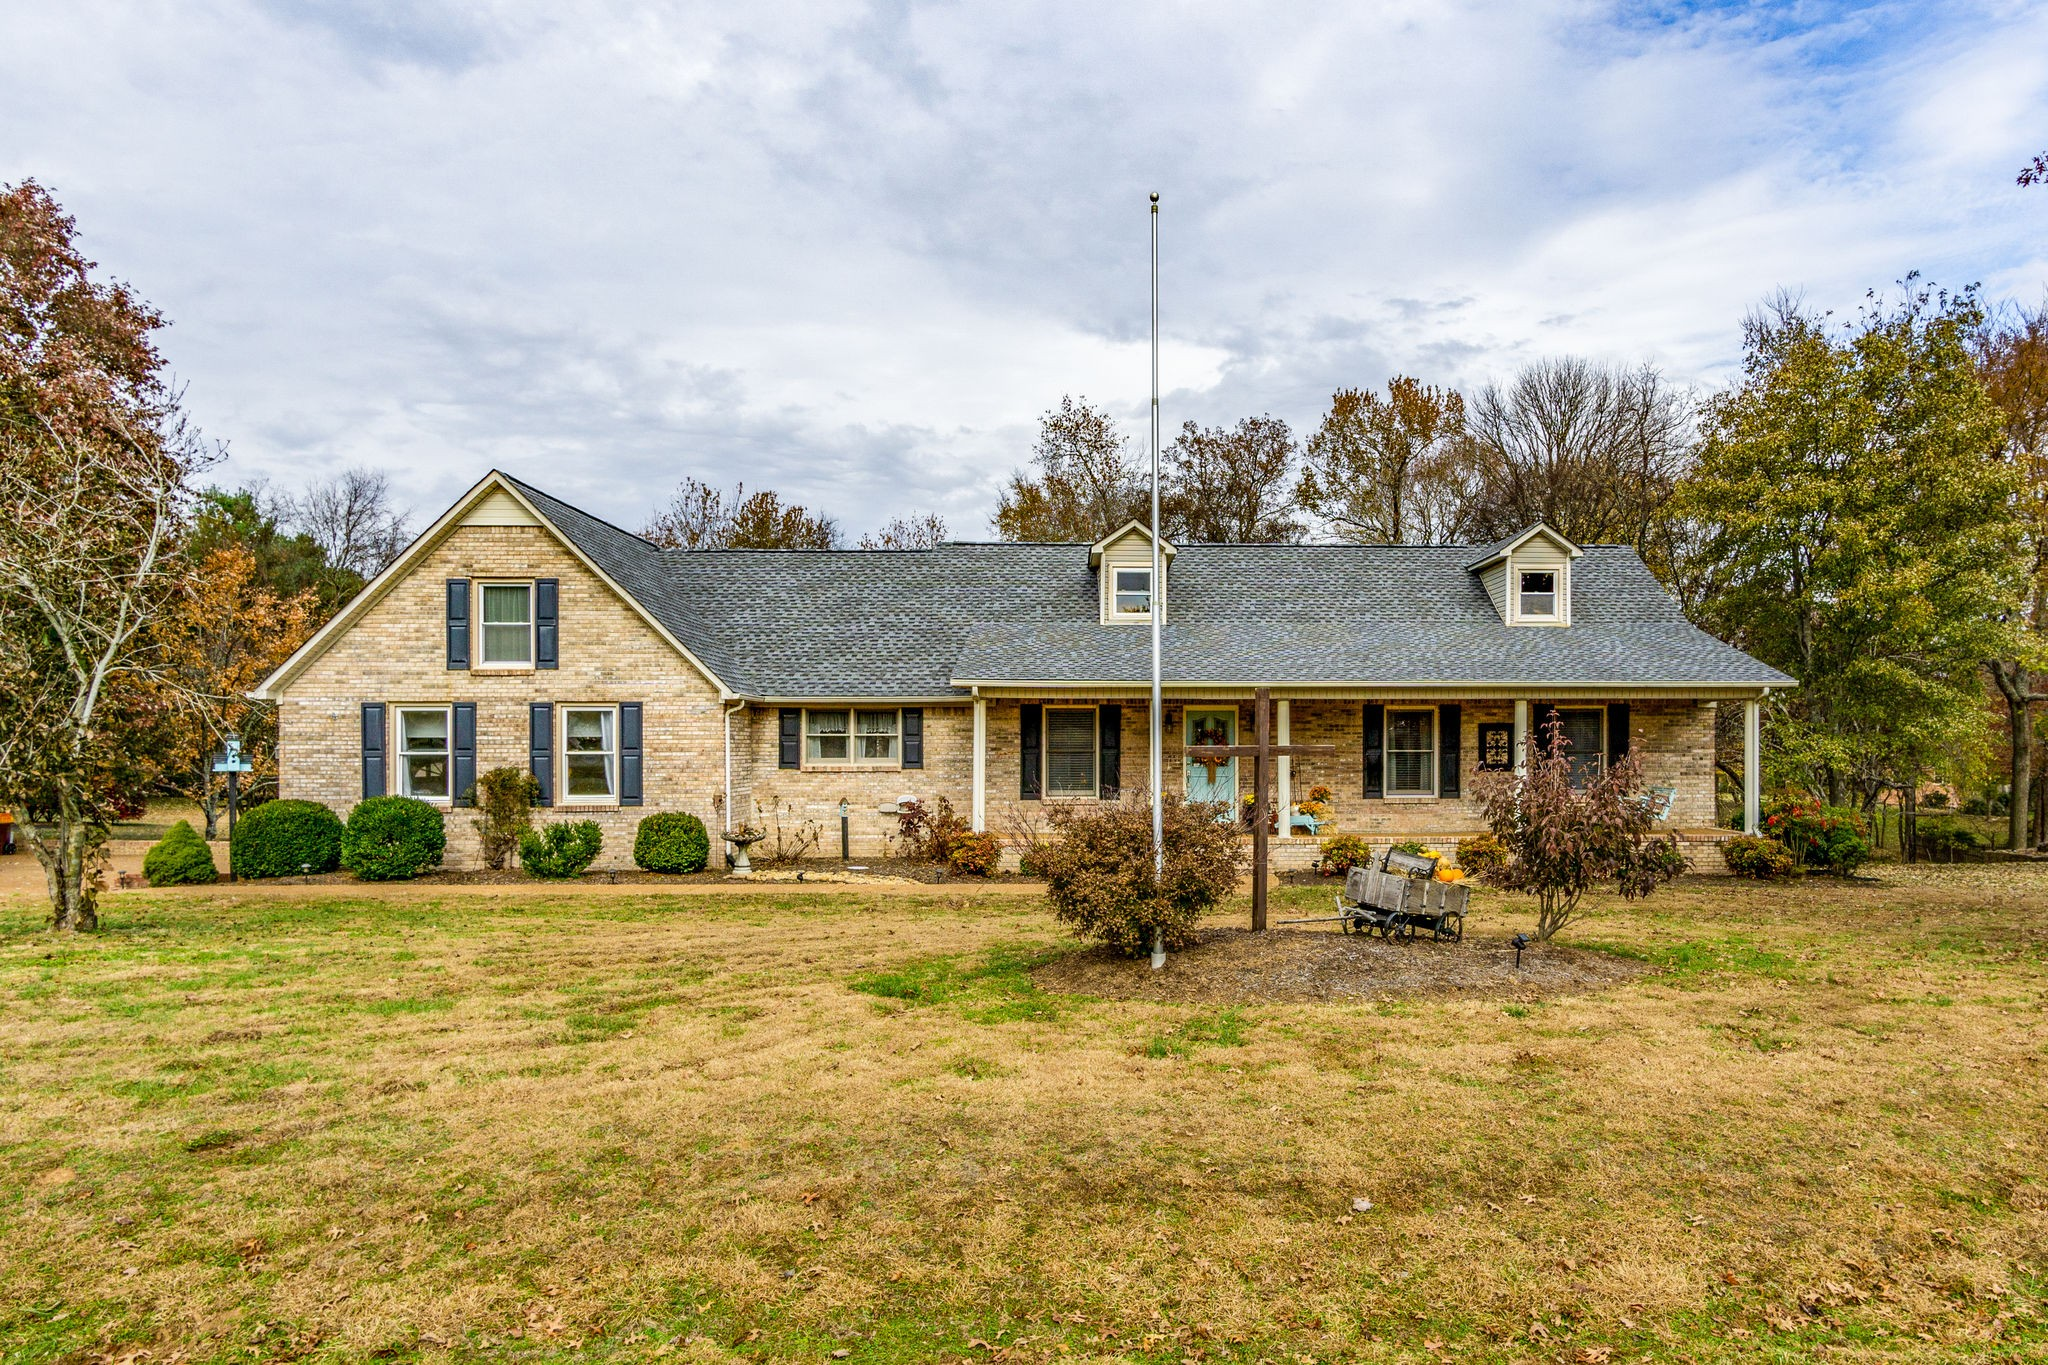 913 Bonnie Blue Ln, Columbia in Maury County County, TN 38401 Home for Sale